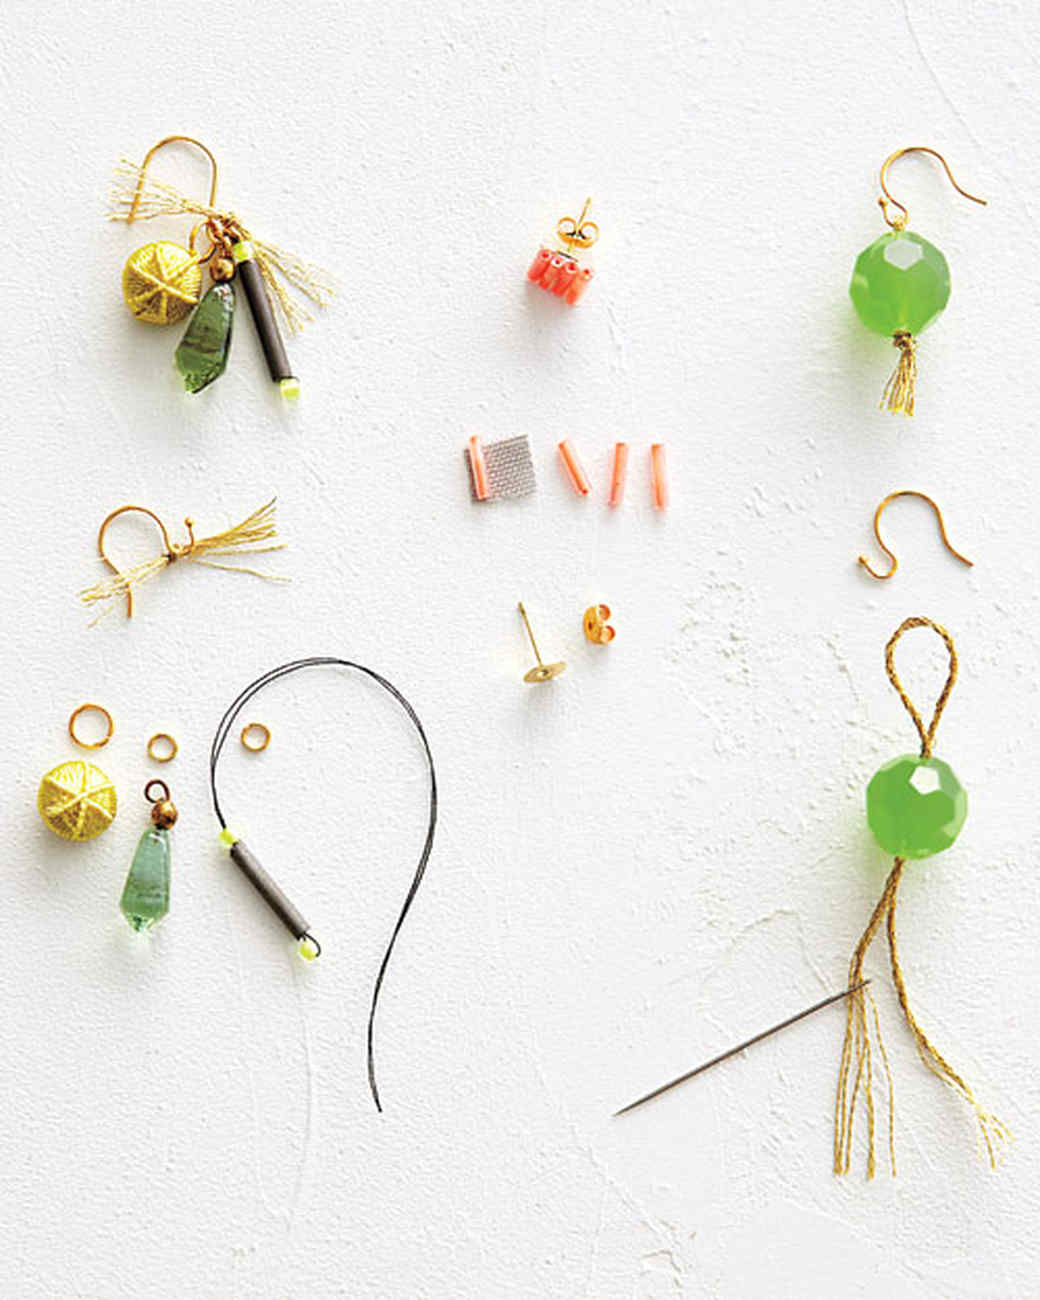 earrings-howto-0511mld107145.jpg